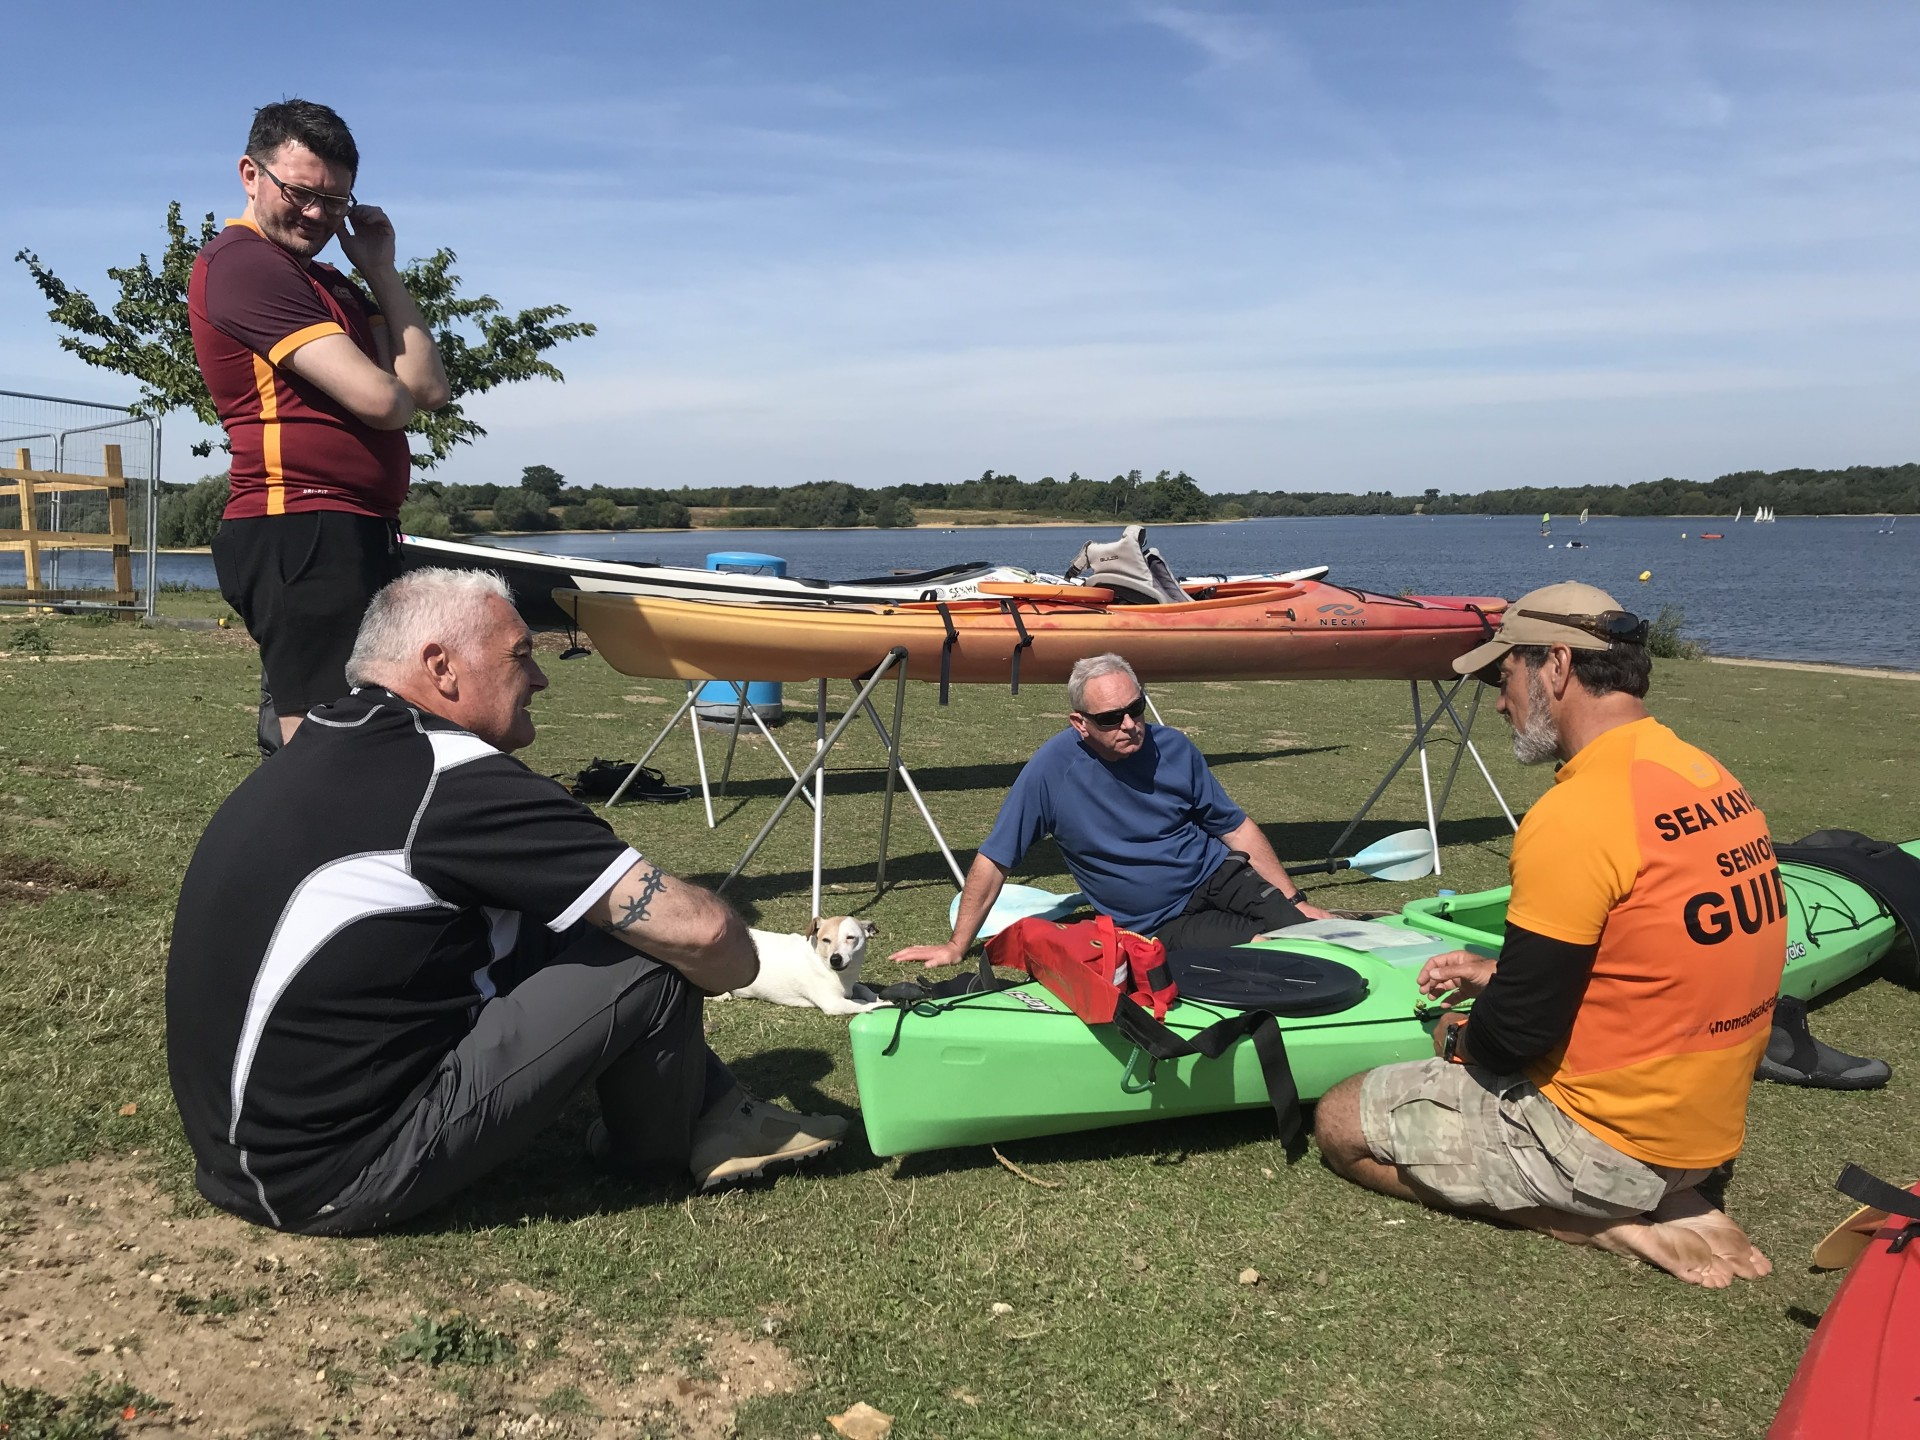 Introductory kayaking courses